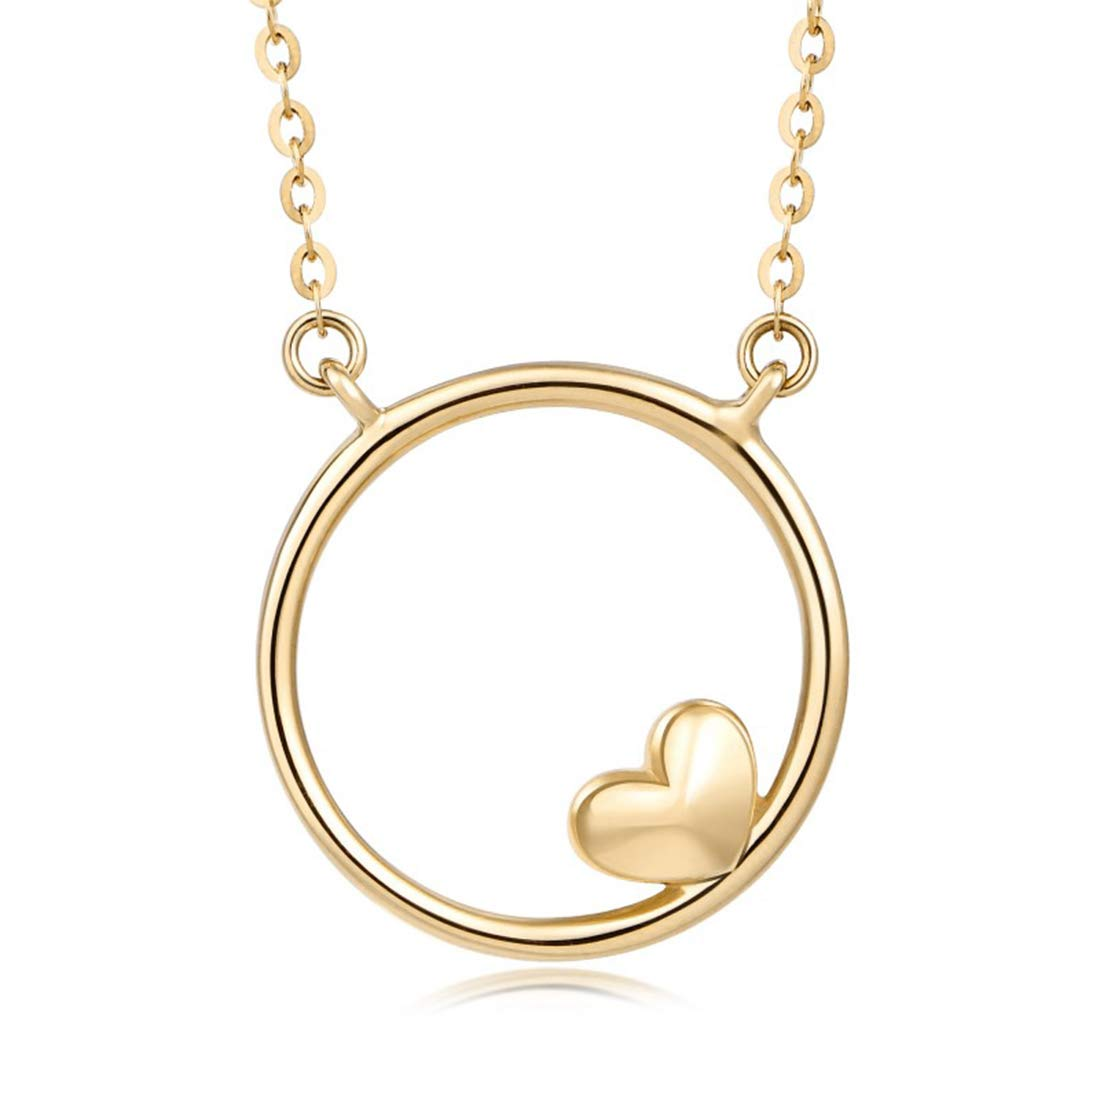 Mother's Day Gift | FANCIME 14K Real Solid Yellow Gold Round Circle with Heart Love Small Pendant Necklace Fine Jewelry for Women 16+2 inch Extender 1.52g